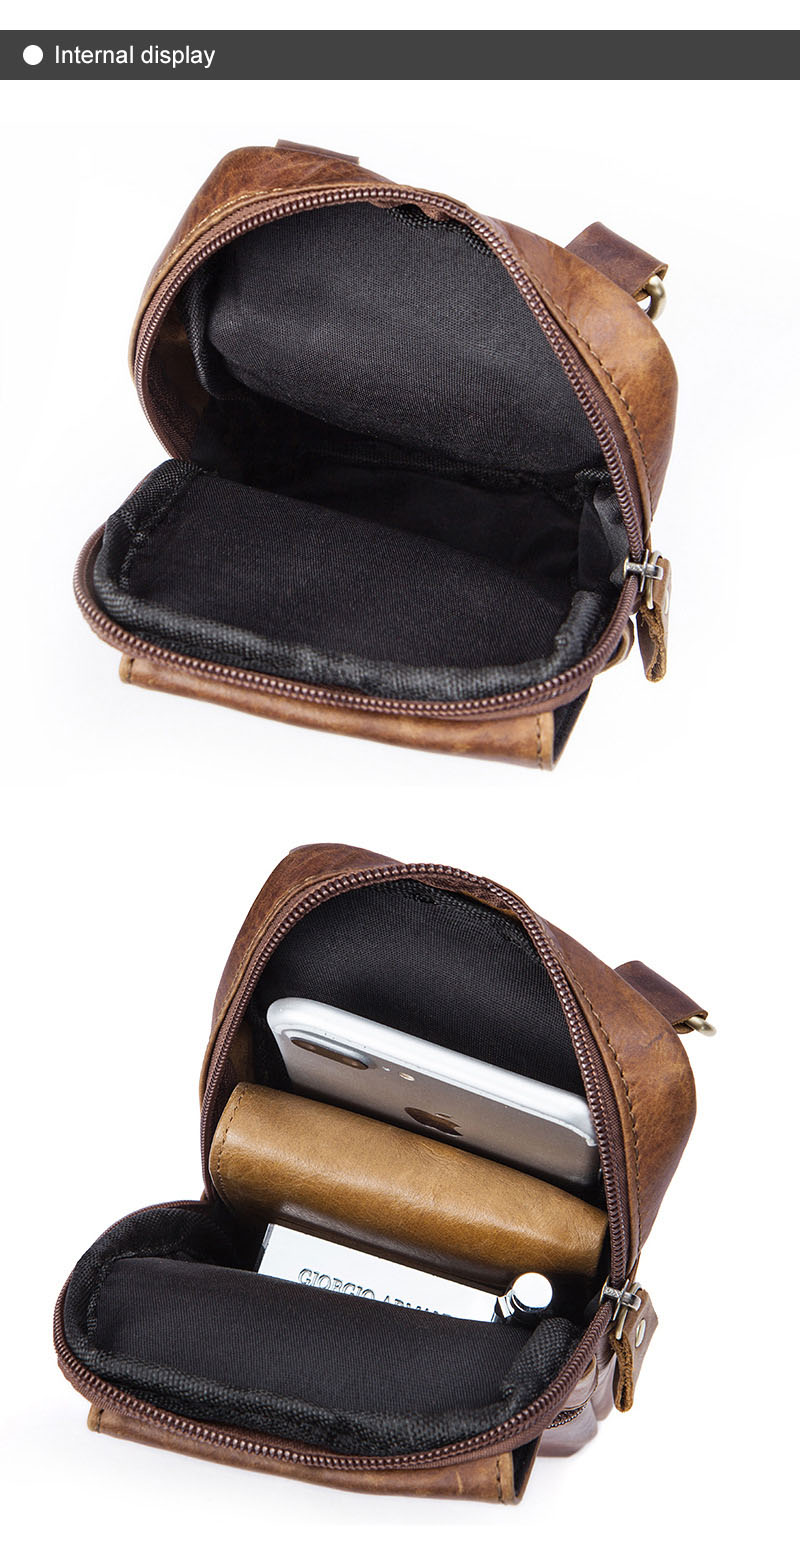 Topdudes.com - High Quality Genuine Leather Small Crossbody Bag